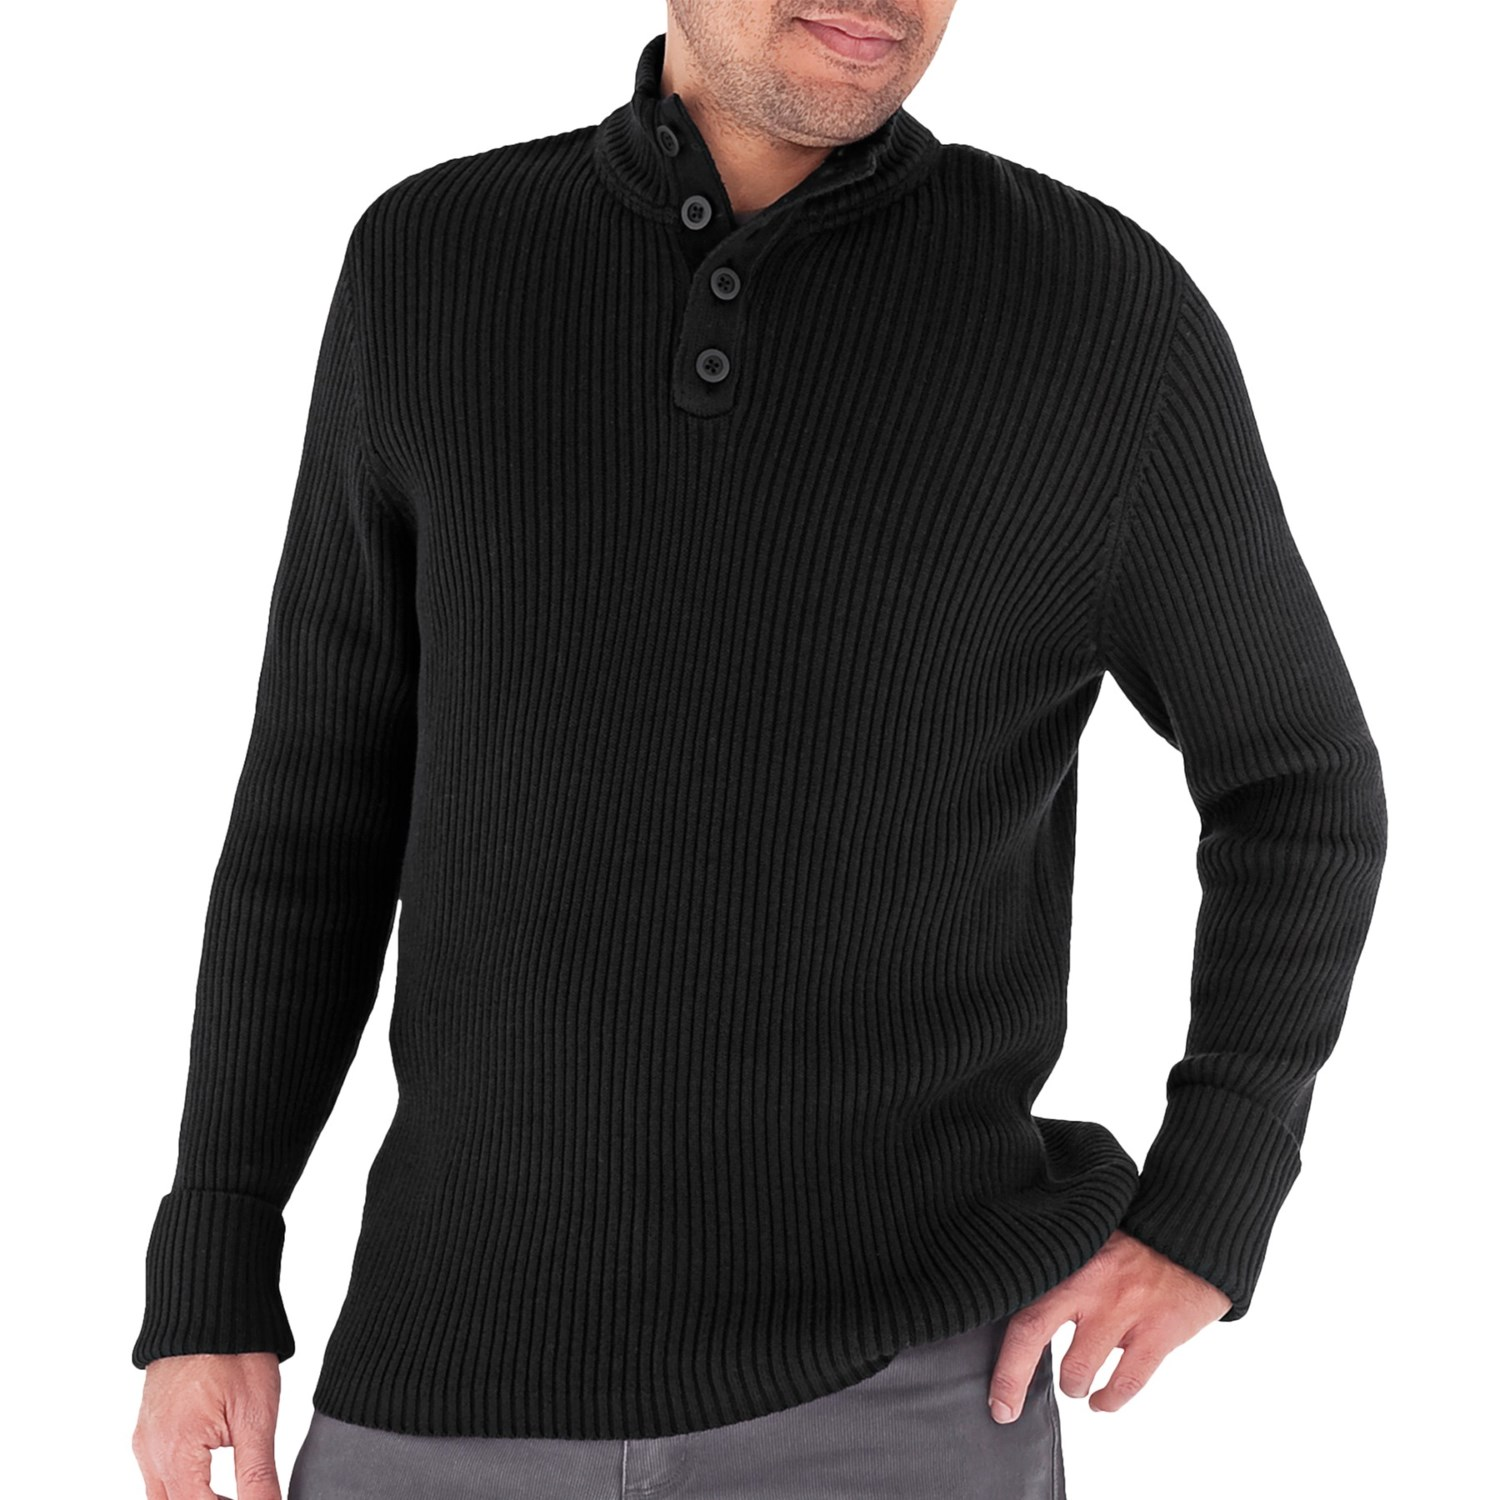 Chaps Mens Sweaters